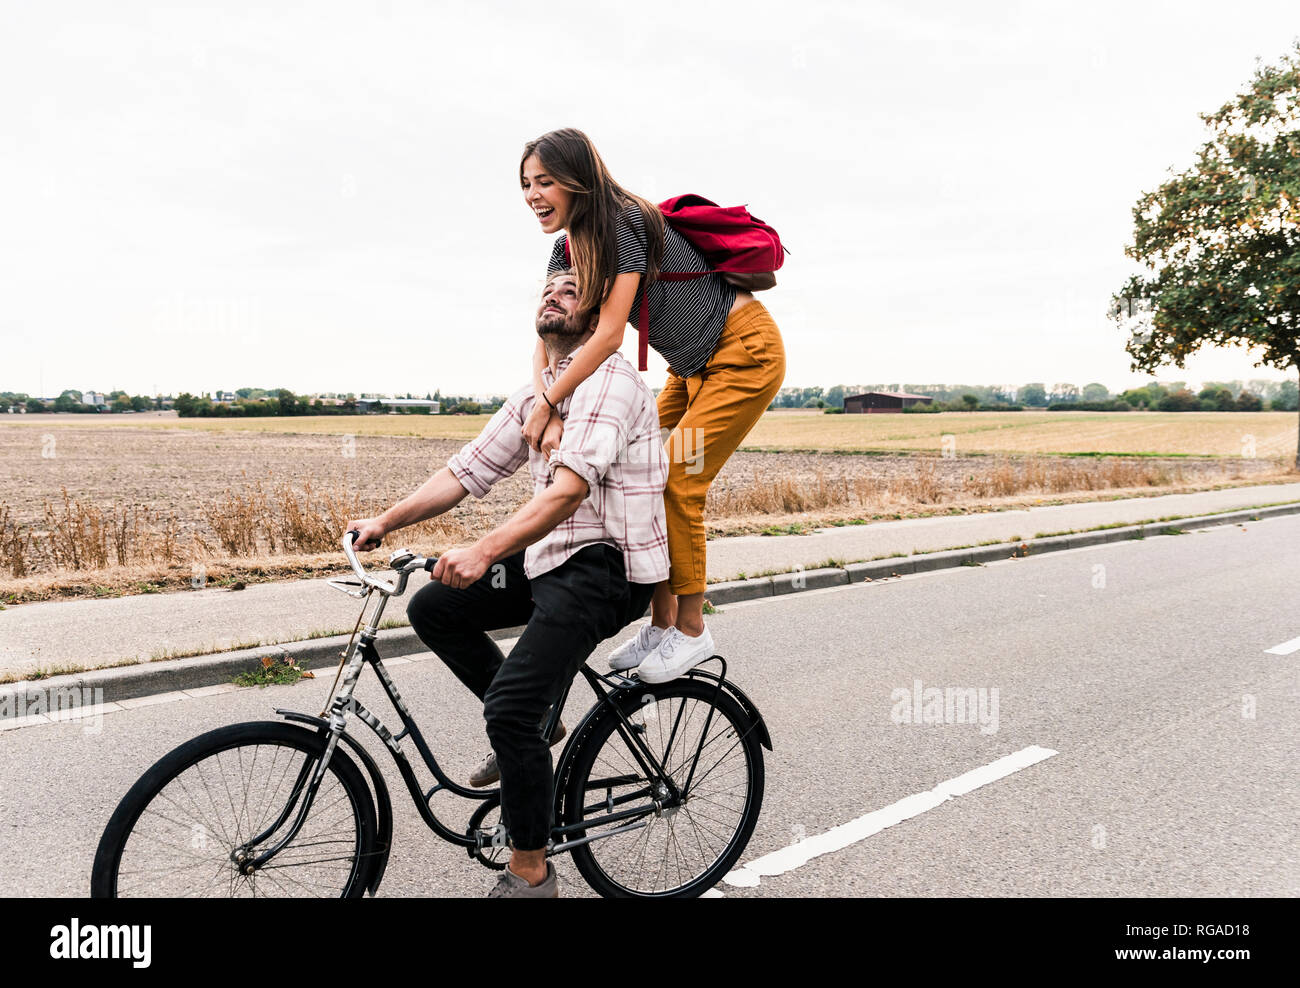 Happy young couple riding together on one bicycle on country road - Stock Image